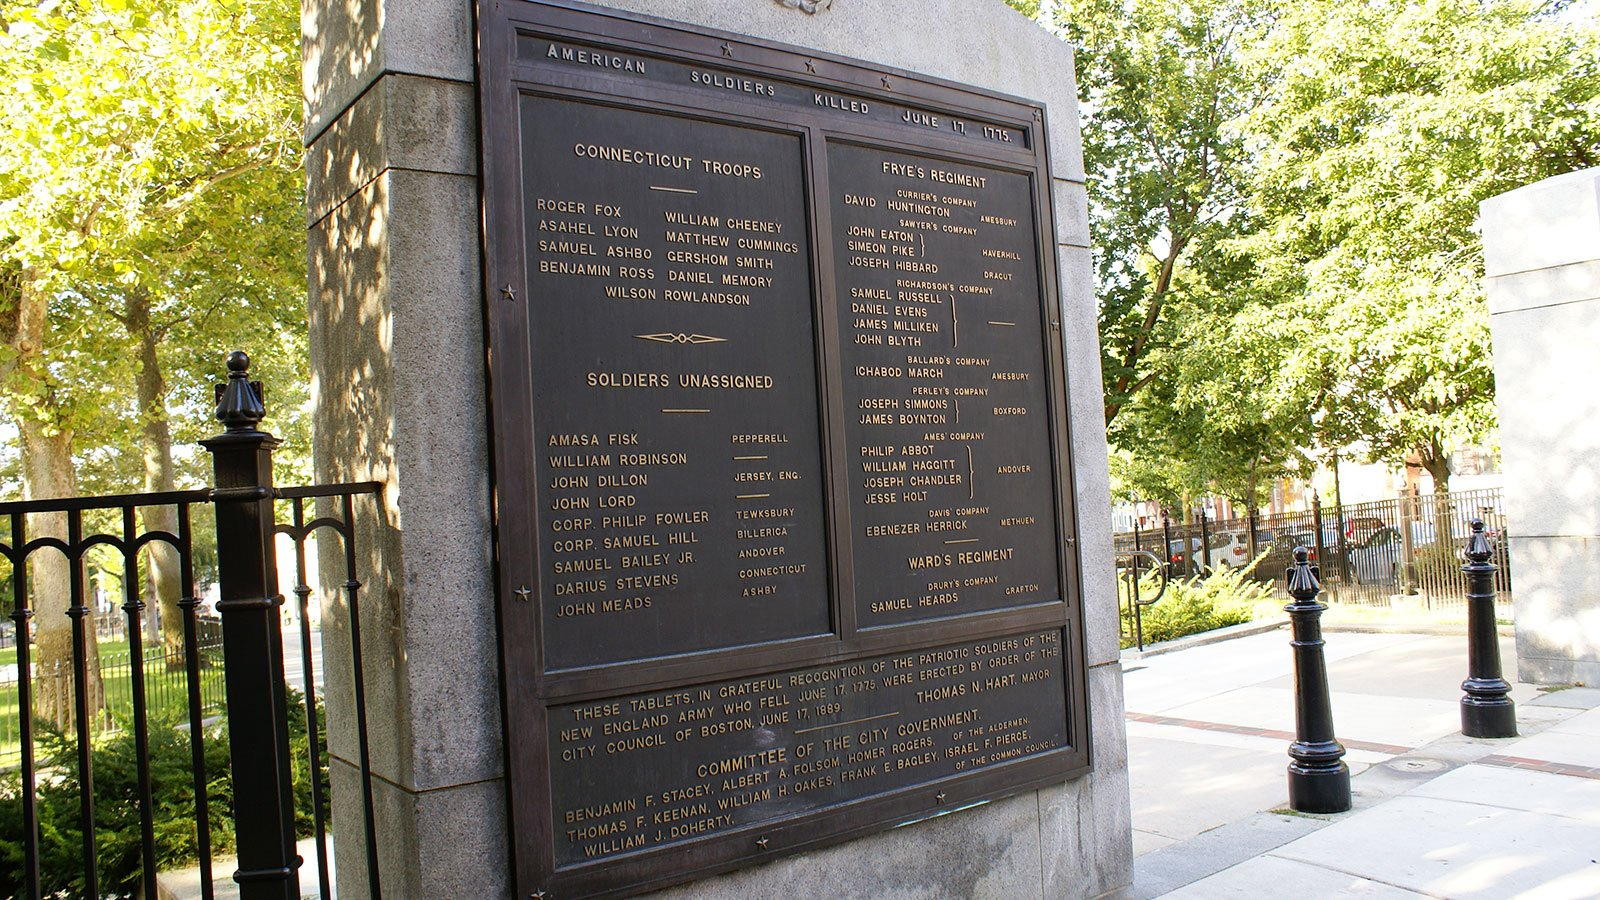 Plaque near the Massachusetts gate, outside the Bunker Hill Monument, commemorates the Revolutionary soldiers killed at the Battle of Bunker Hill